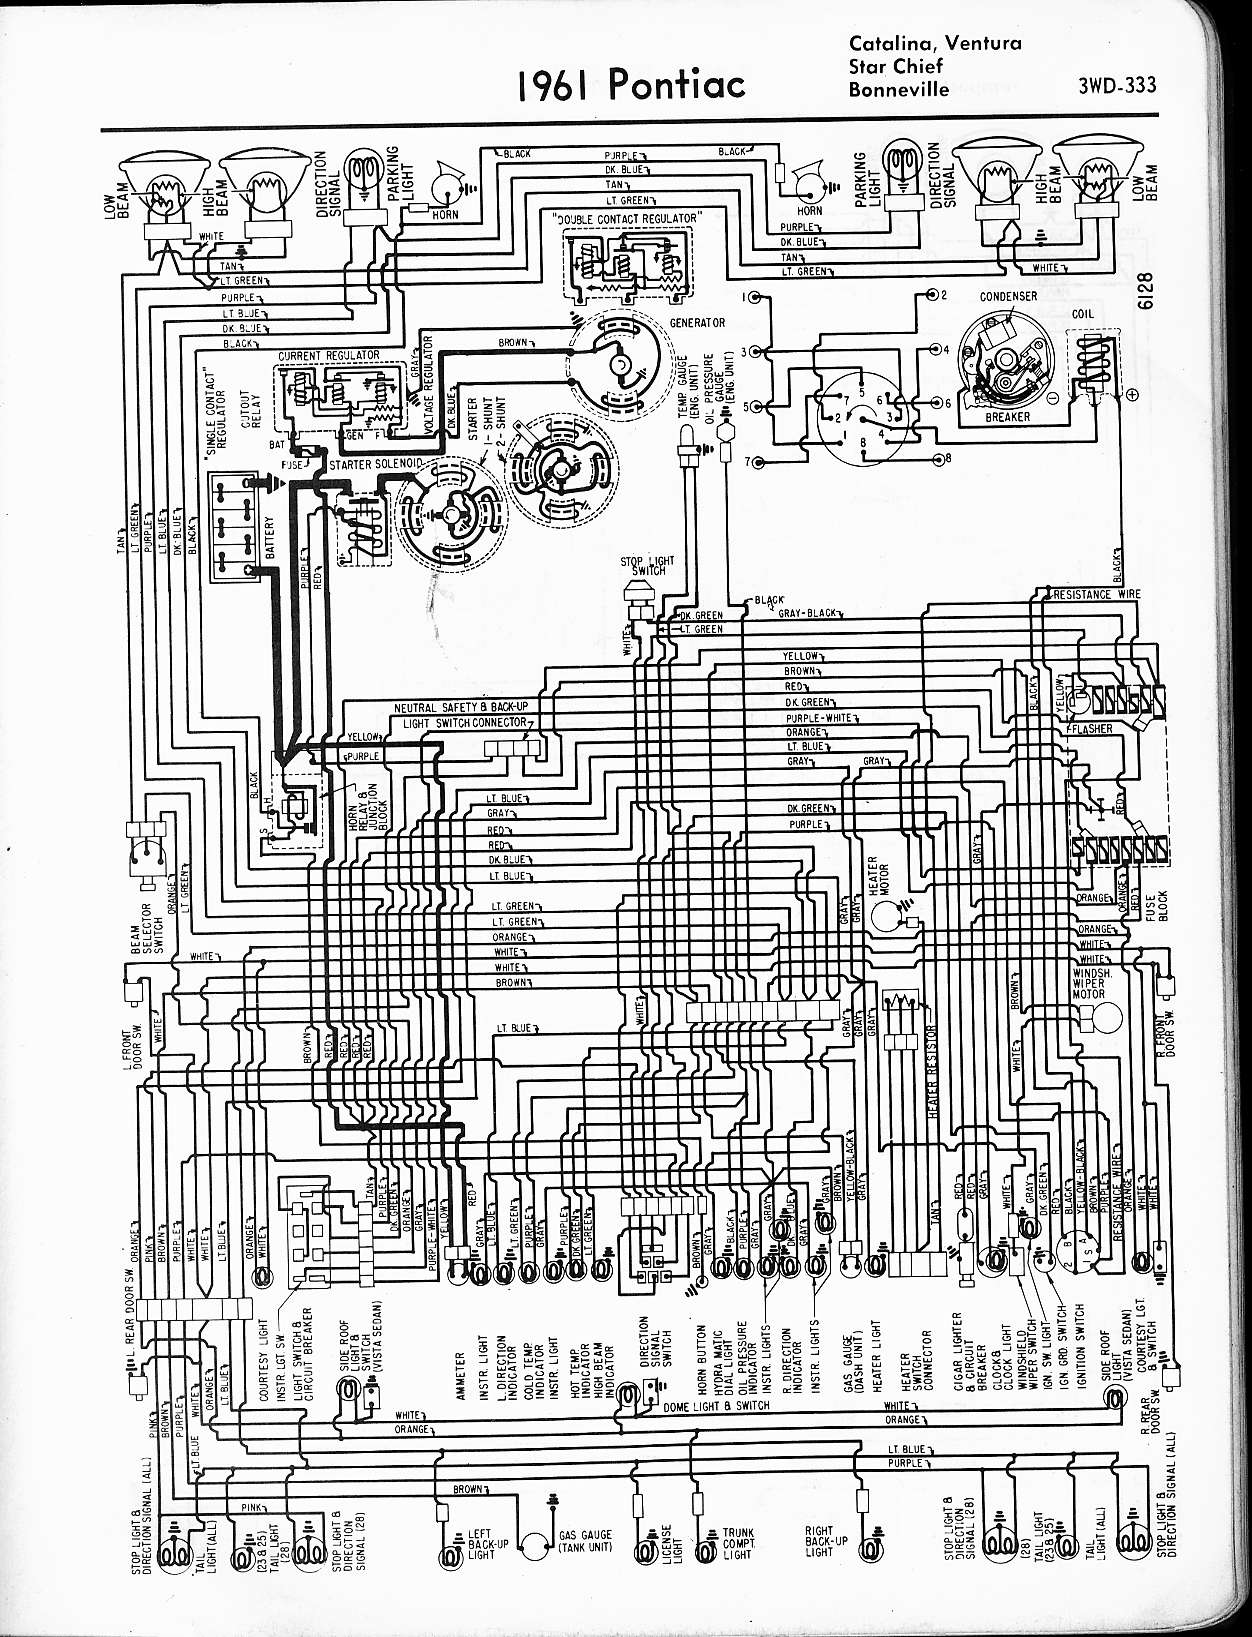 1998 Pontiac Sunfire Plock 1 System Wiring Diagram Free Picture Vibe Radio Wallace Racing Diagrams Rh Wallaceracing Com For 2001